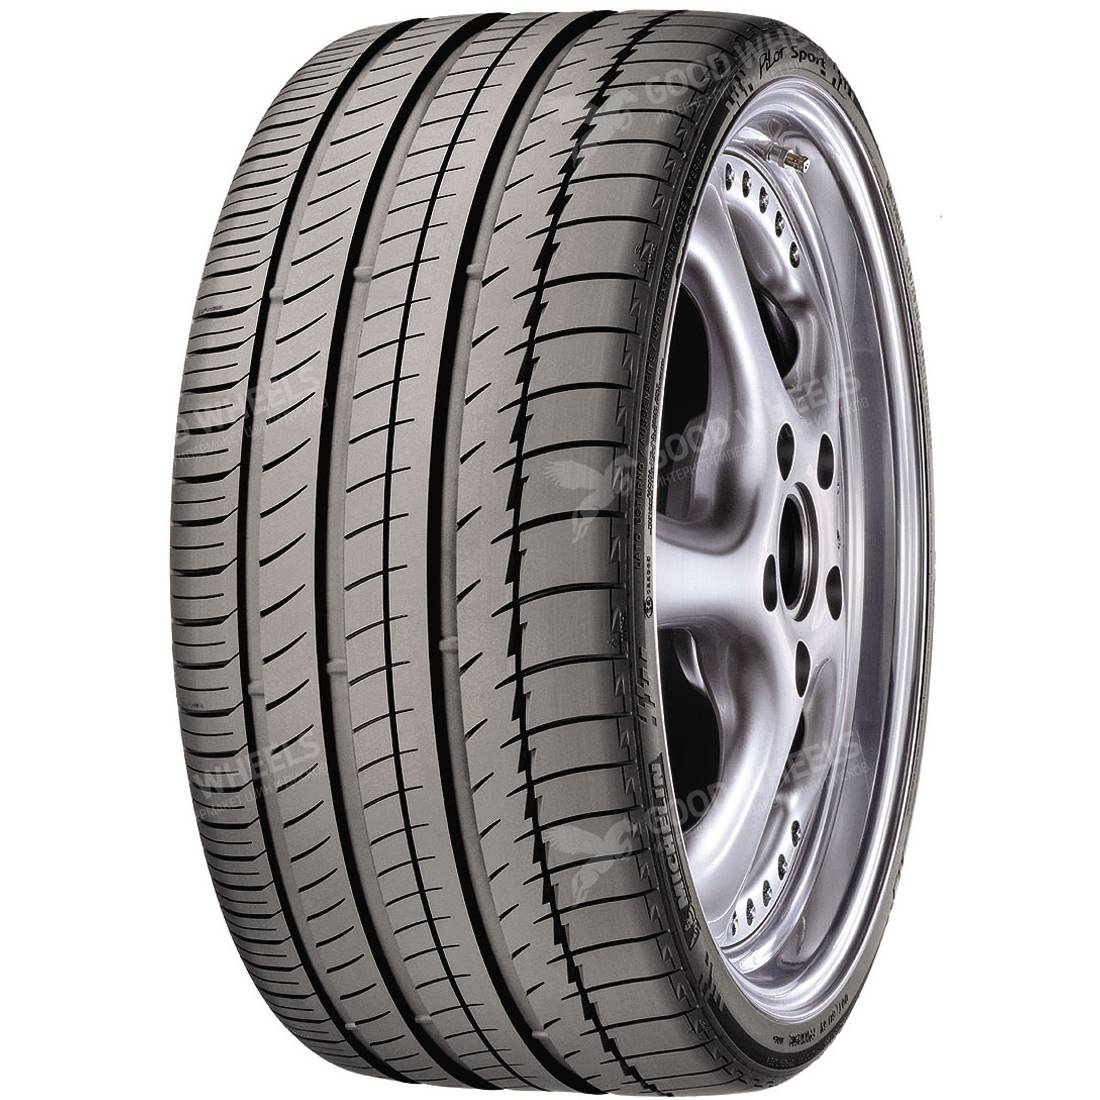 Michelin Pilot Sport 2 (PS2) 255/35 R18 90Y  RunFlat